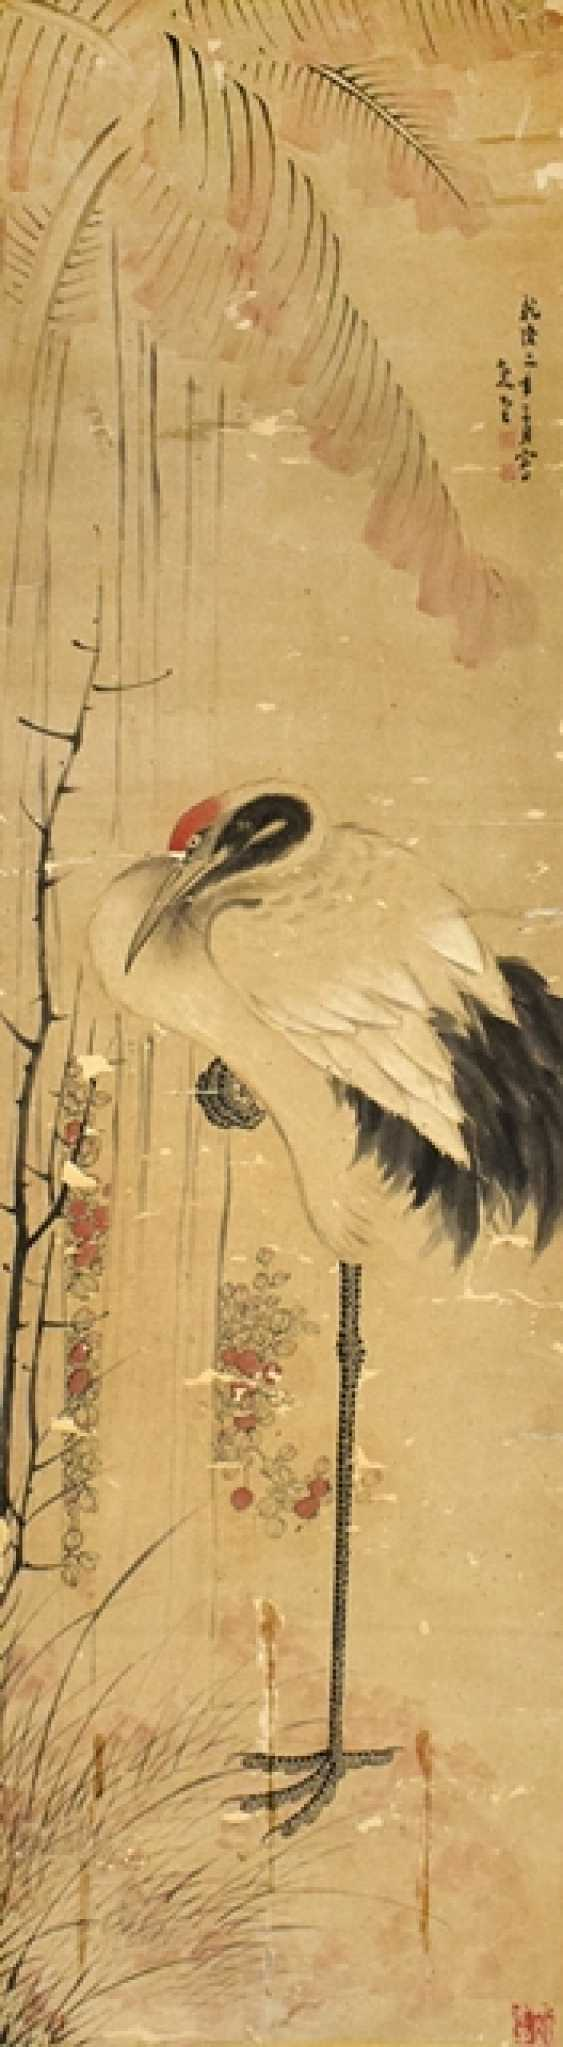 Crane is under the fiber of banana leaf in the style of Li Shan (1686-1762), hanging scroll on paper - photo 1